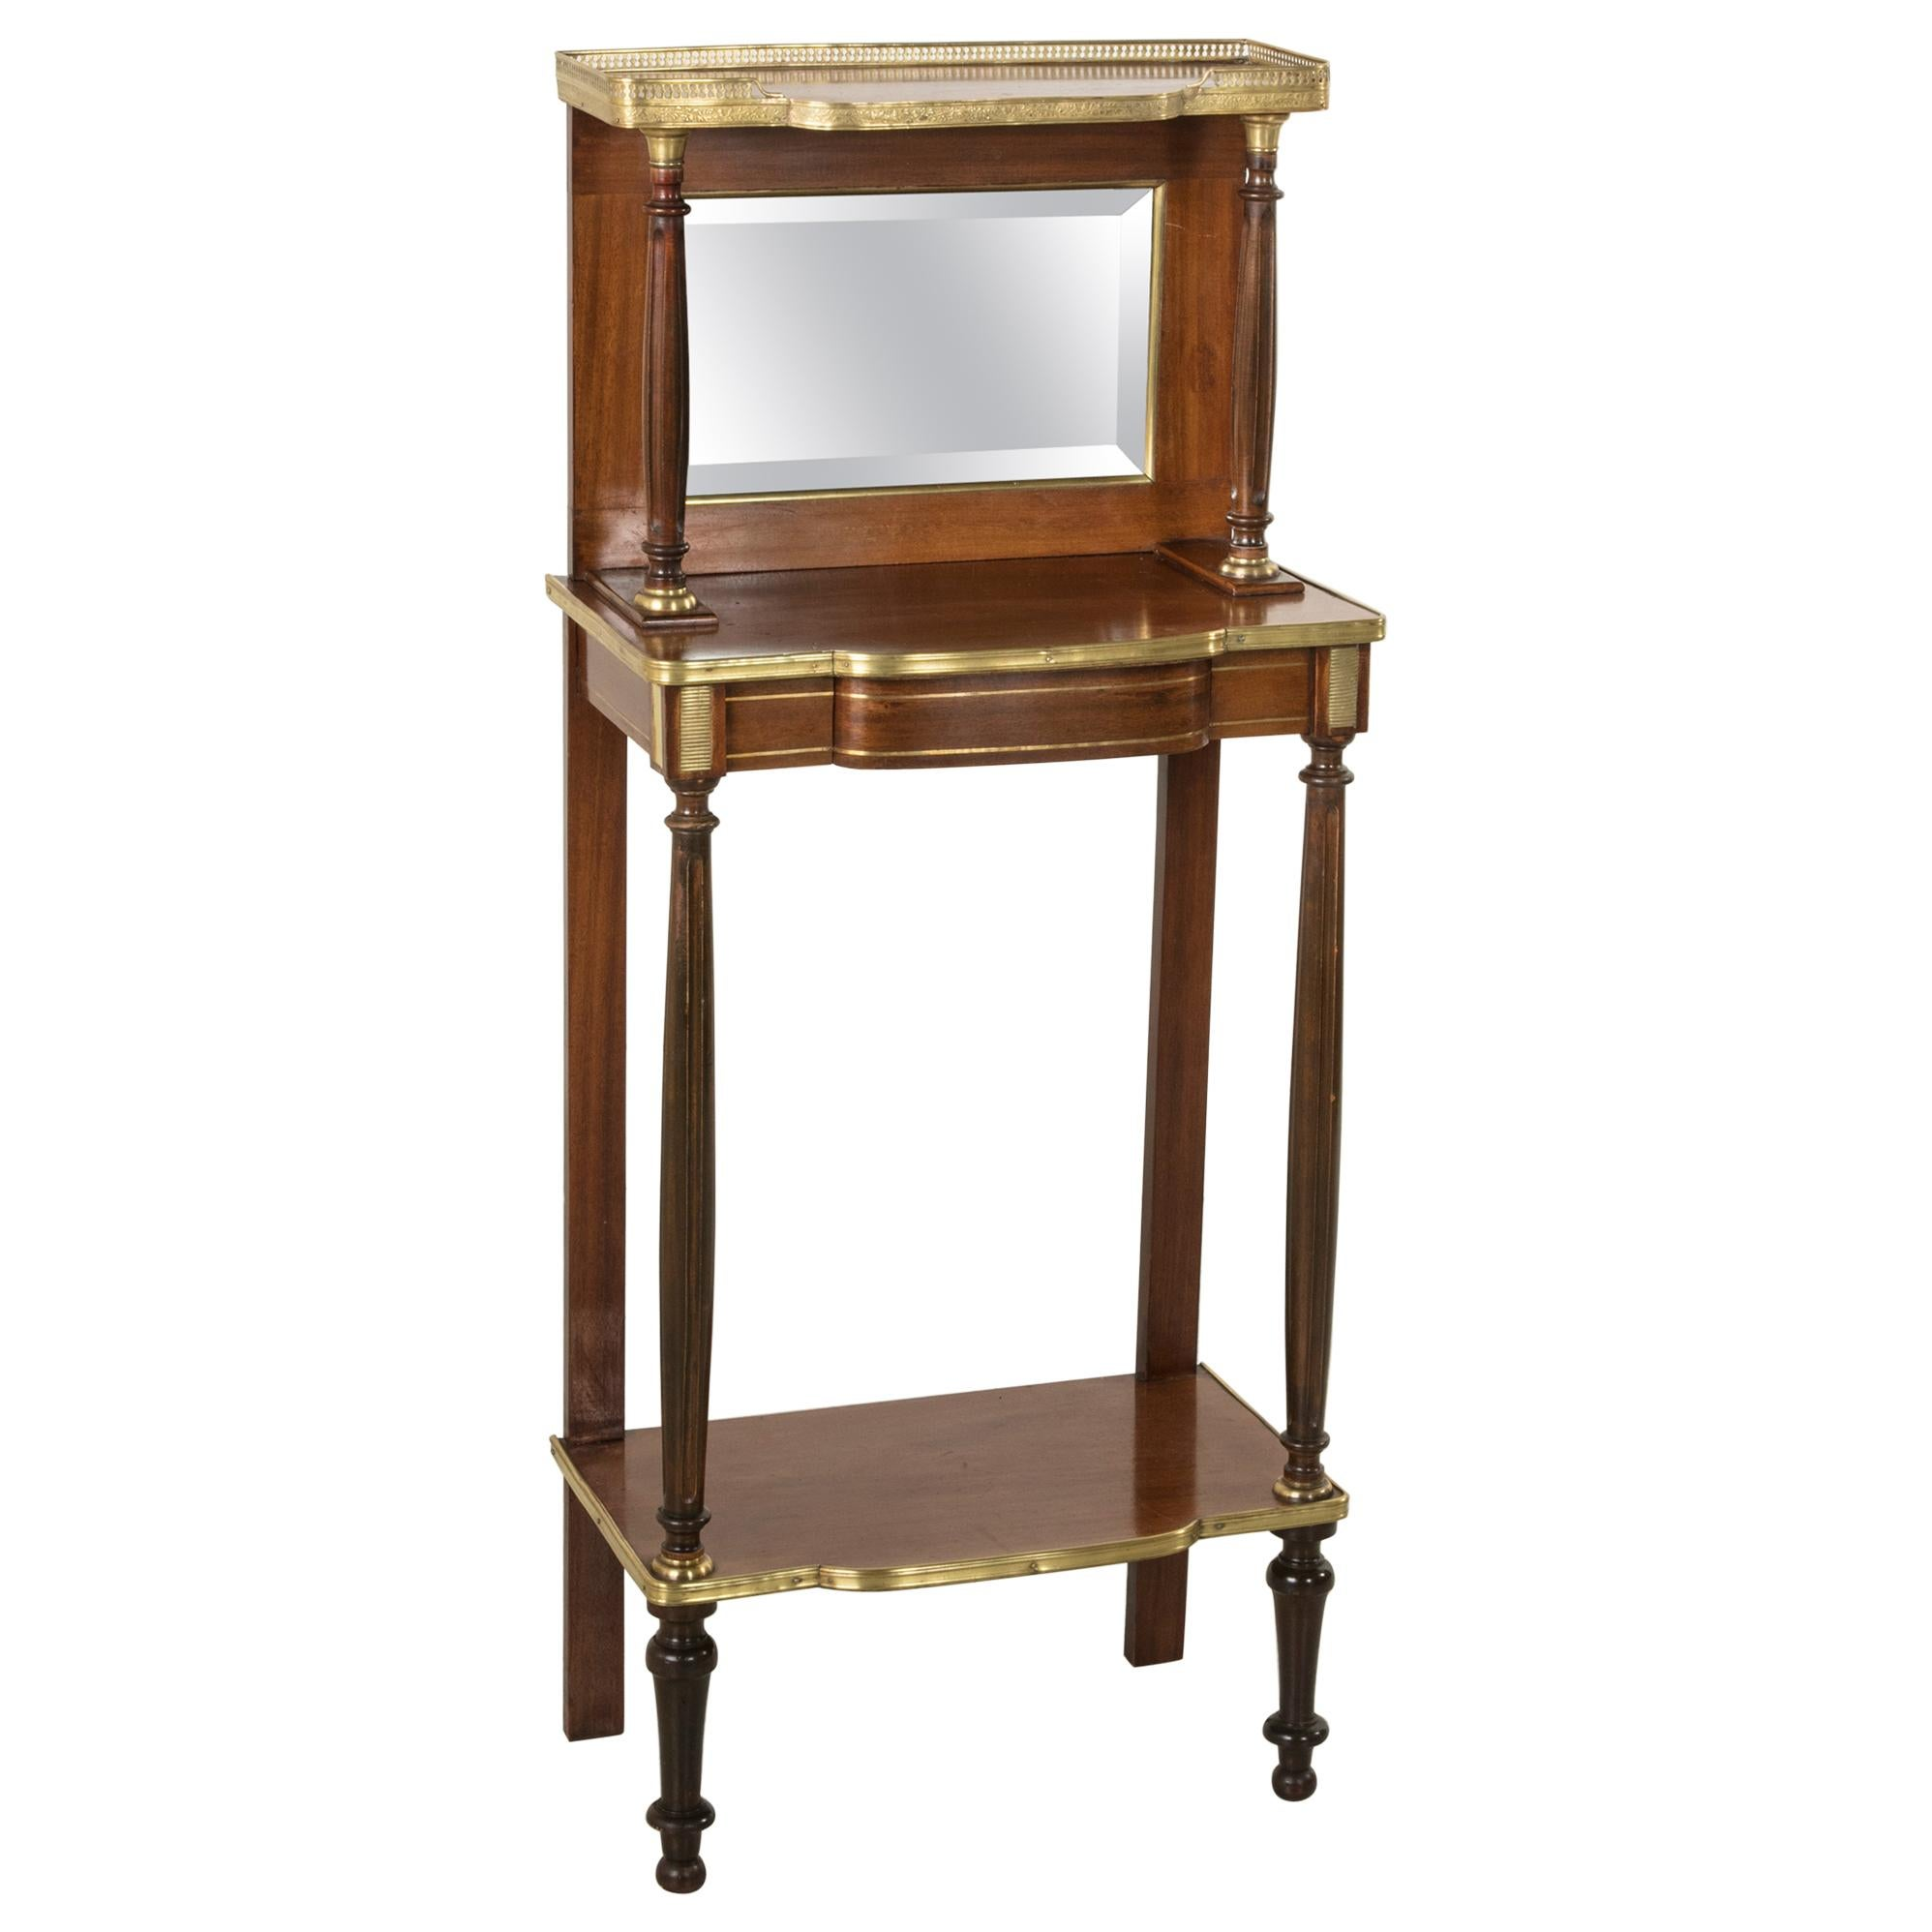 Late 19th Century French Louis XVI Style Mahogany Console Table, Bronze, Mirror